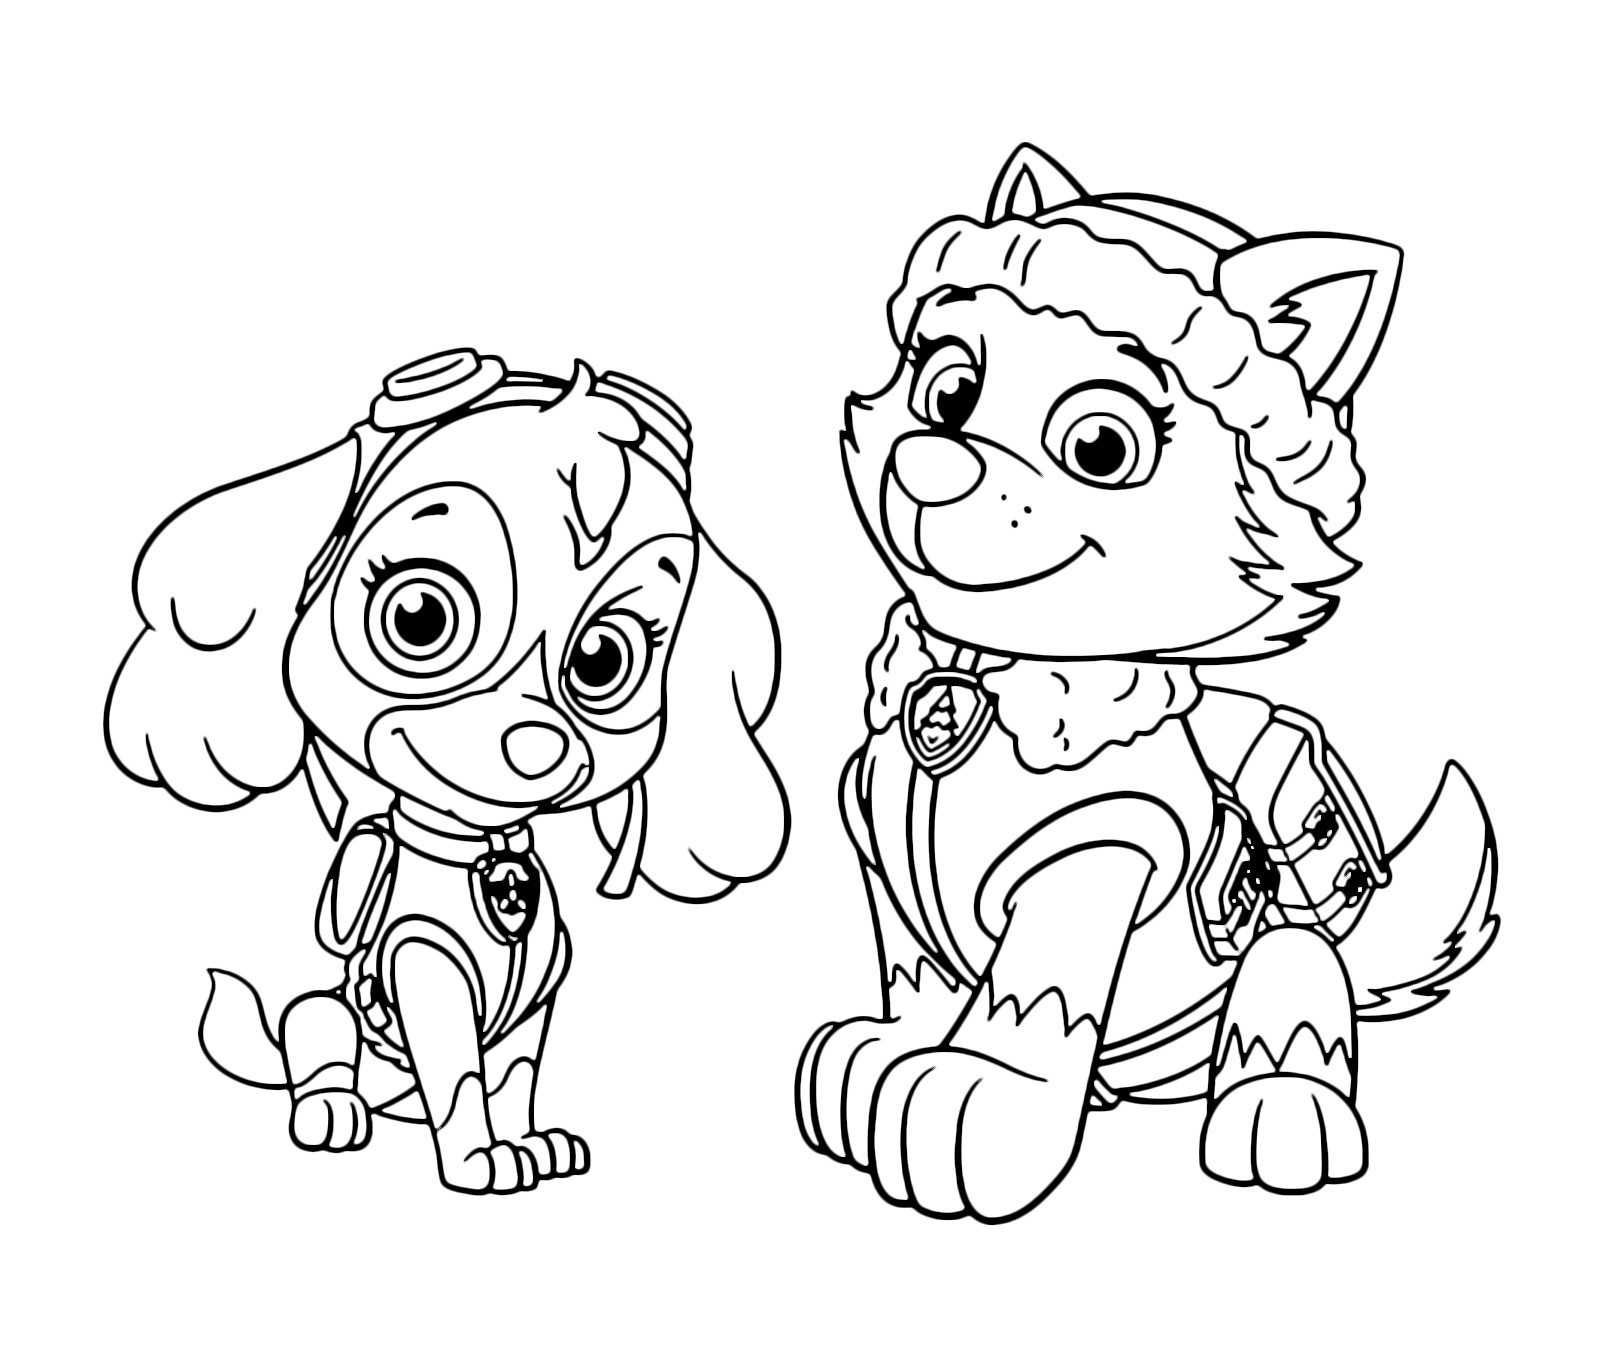 Coloring Pages : Cute Paw Patrol Coloring Get Ryder Printable ...